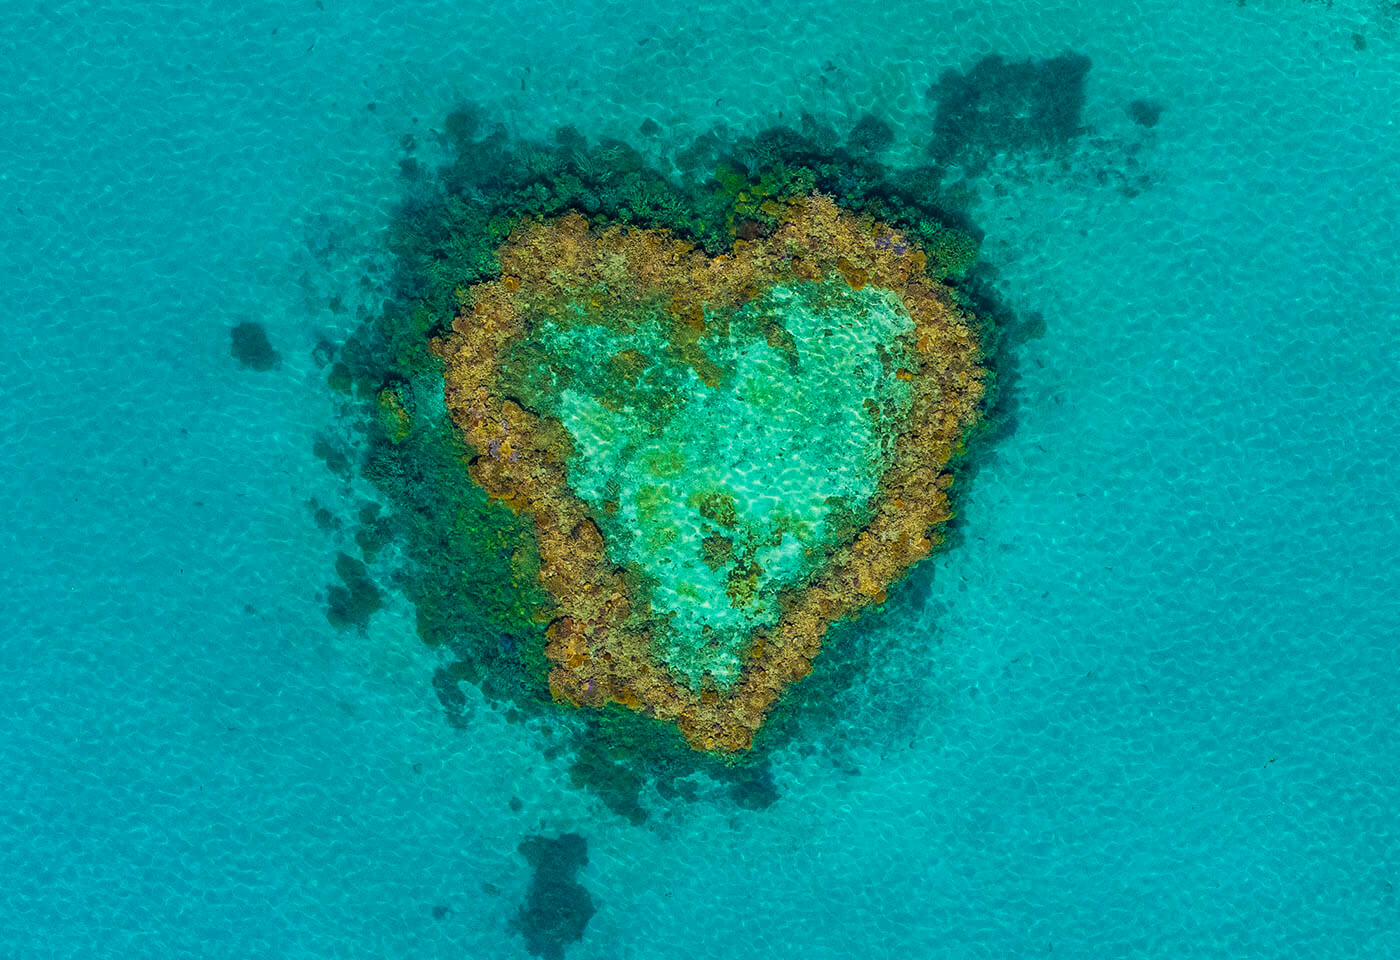 Aerial image of heart island by Josh Smith